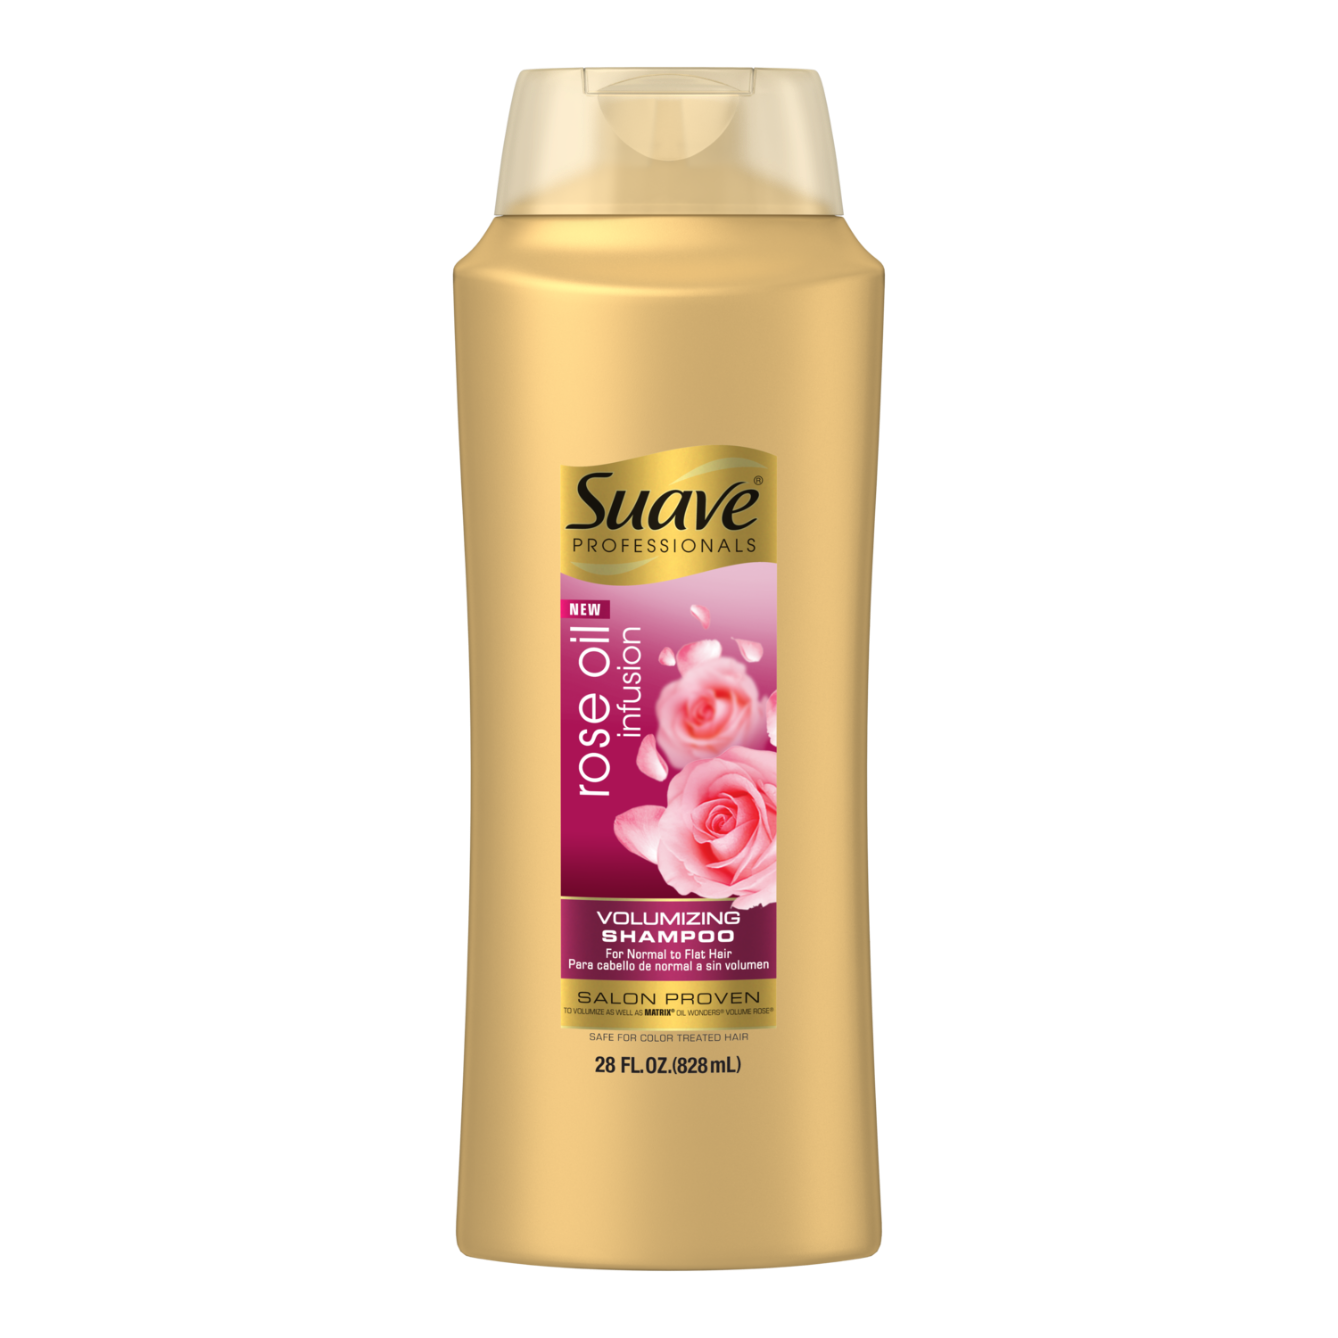 Rose Oil Infusion Volumizing Shampoo Suave Professionals 174